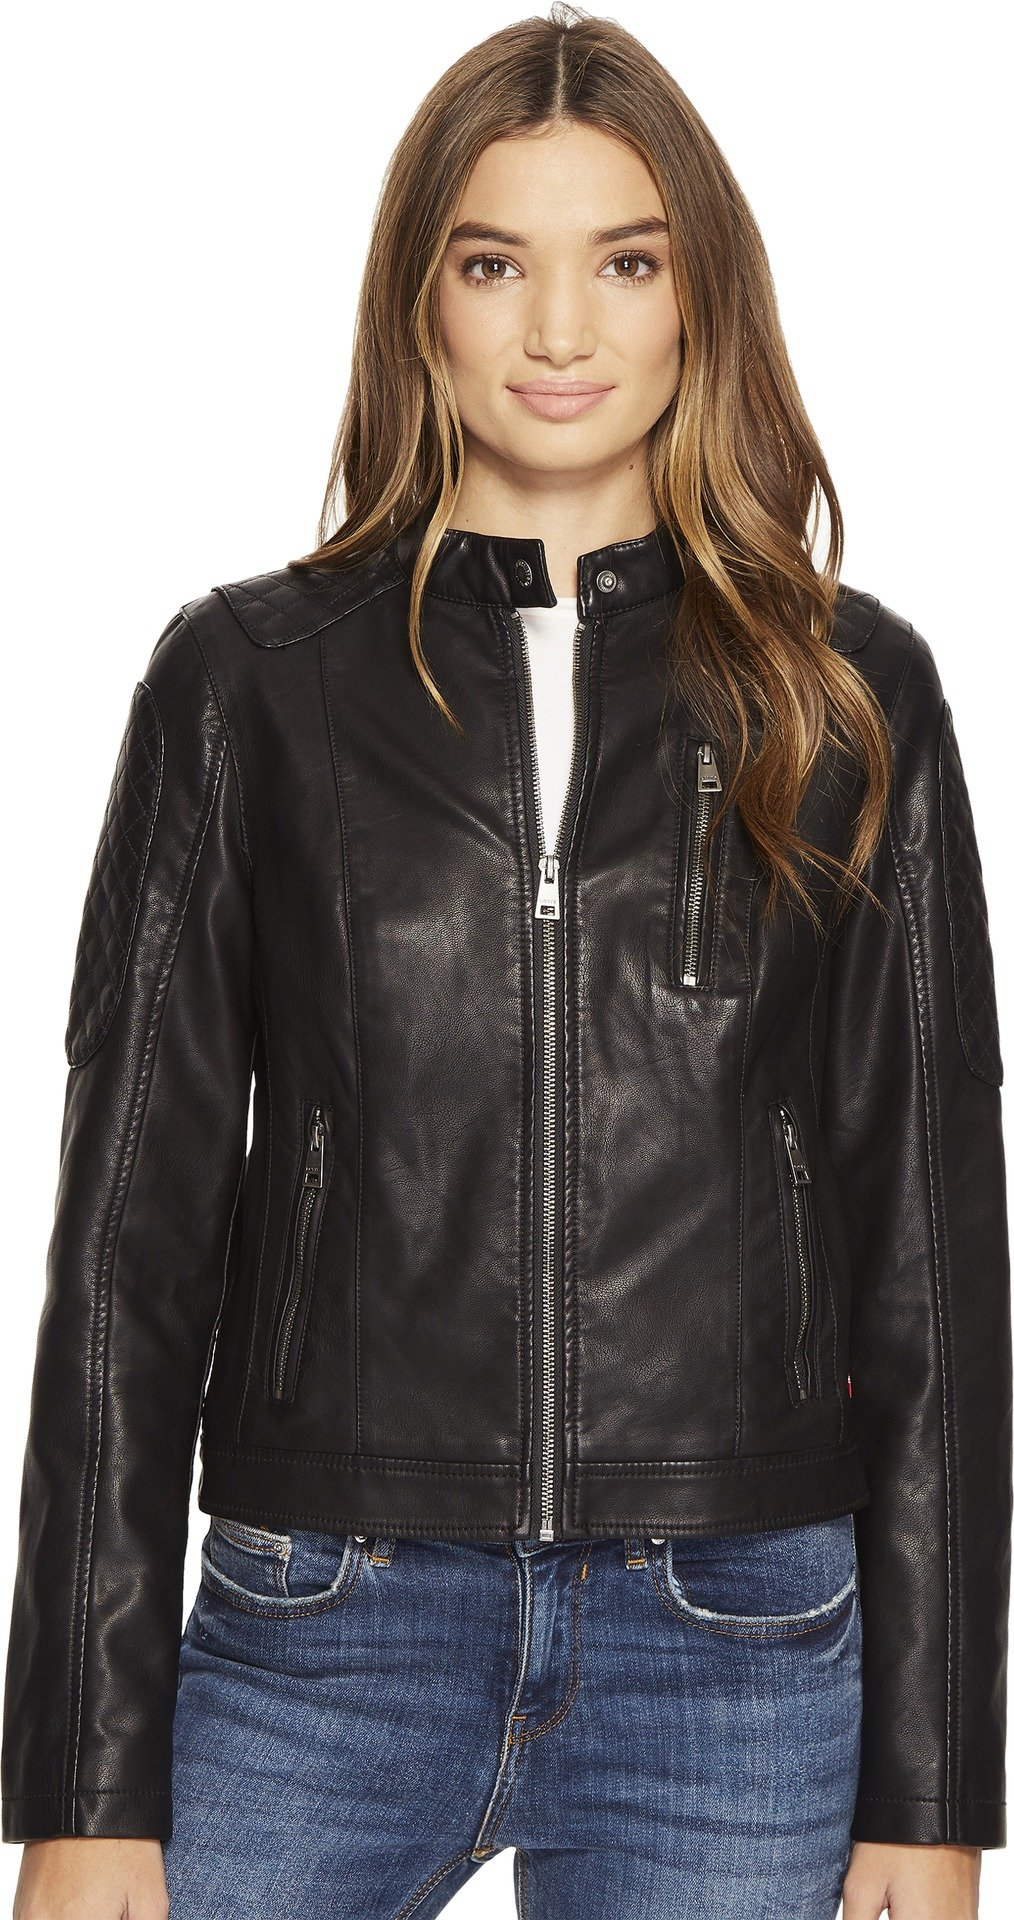 Levi's Women's Faux Leather Fashion Quilted Racer Jacket, Black, Medium